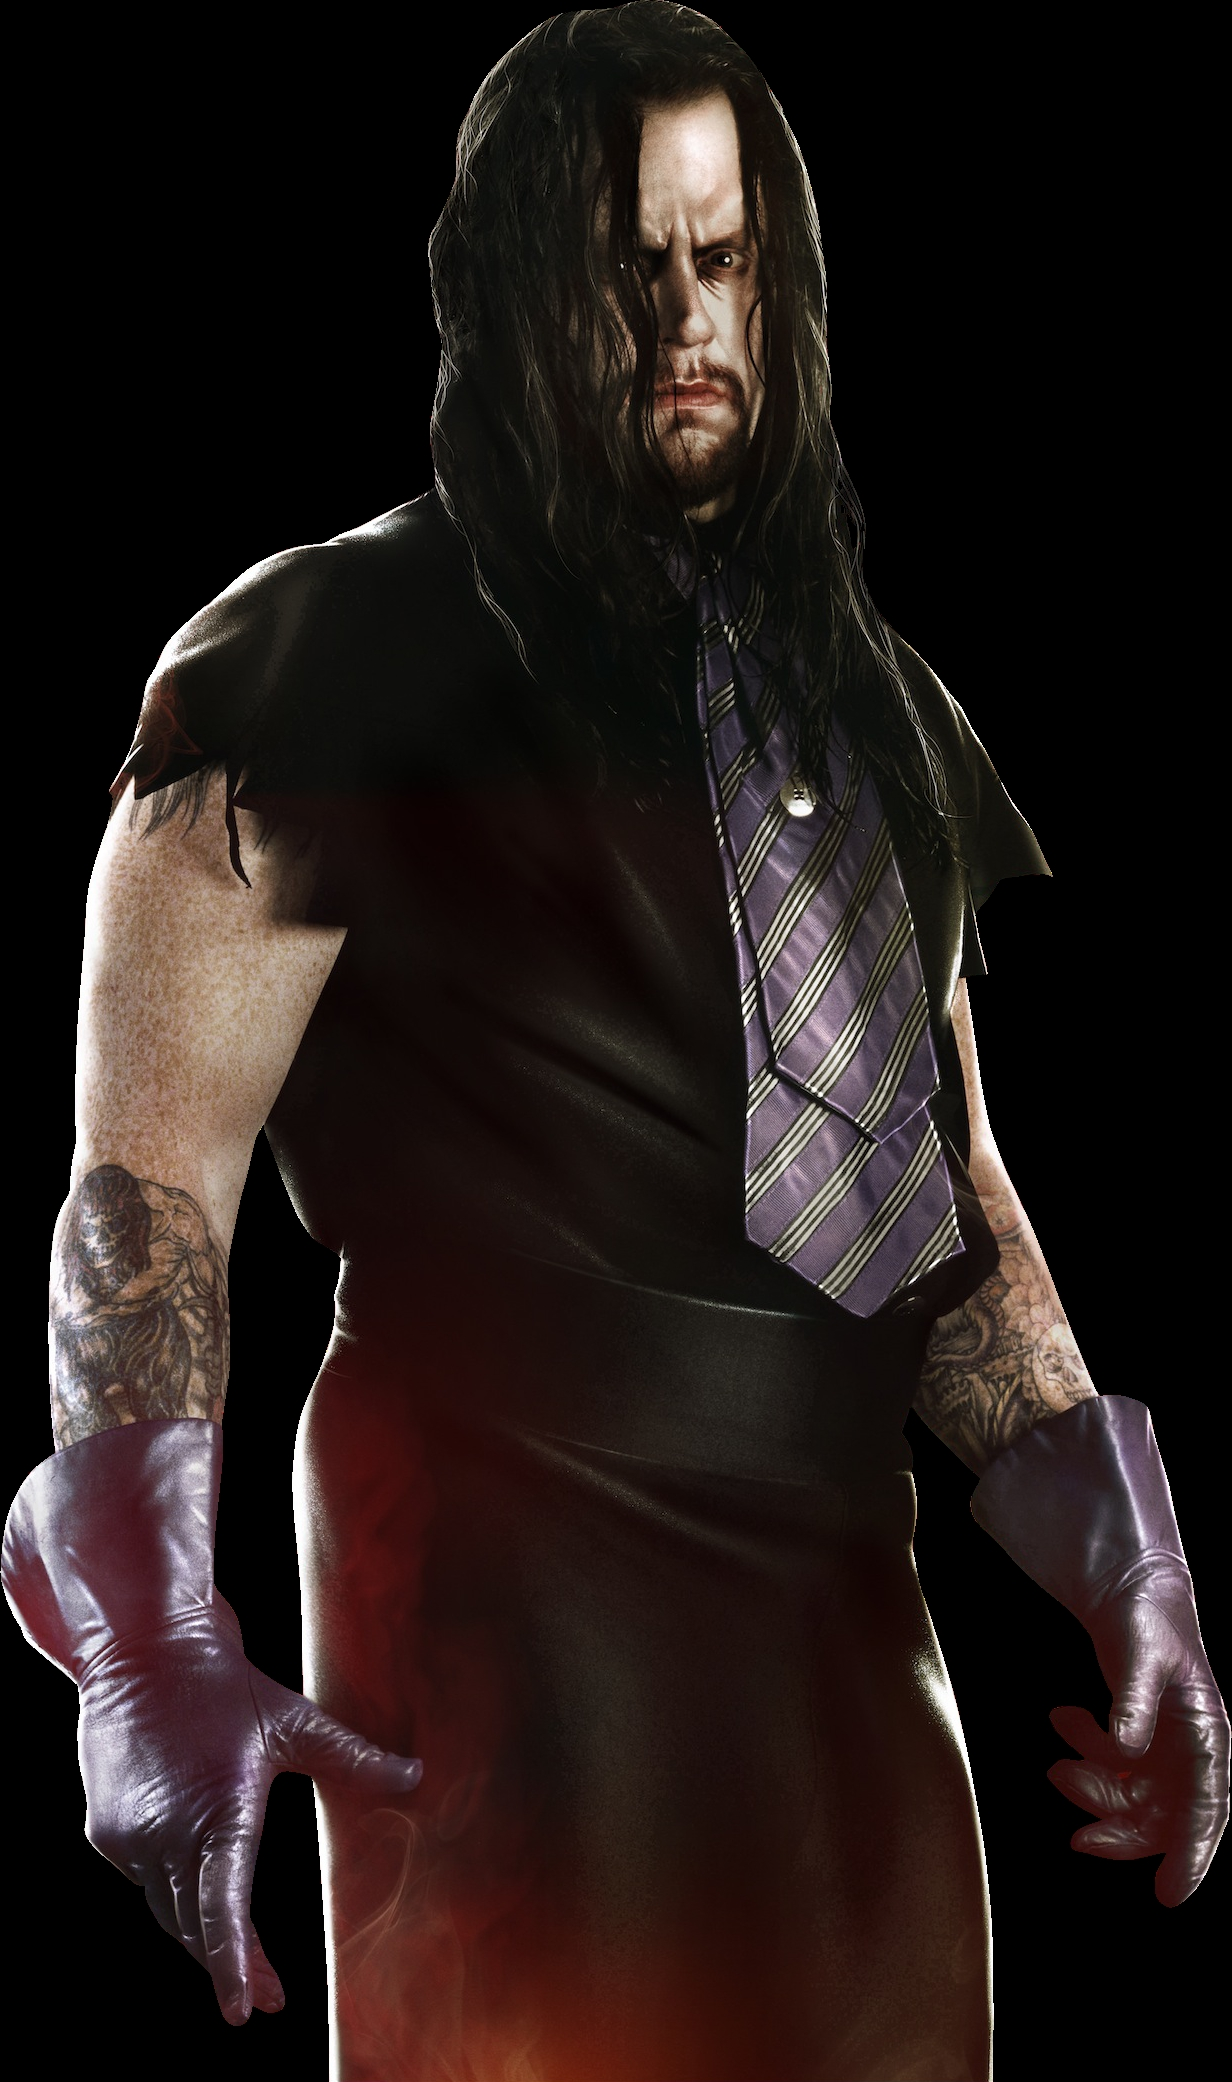 wwe 2k14 undertaker dead man free hd download